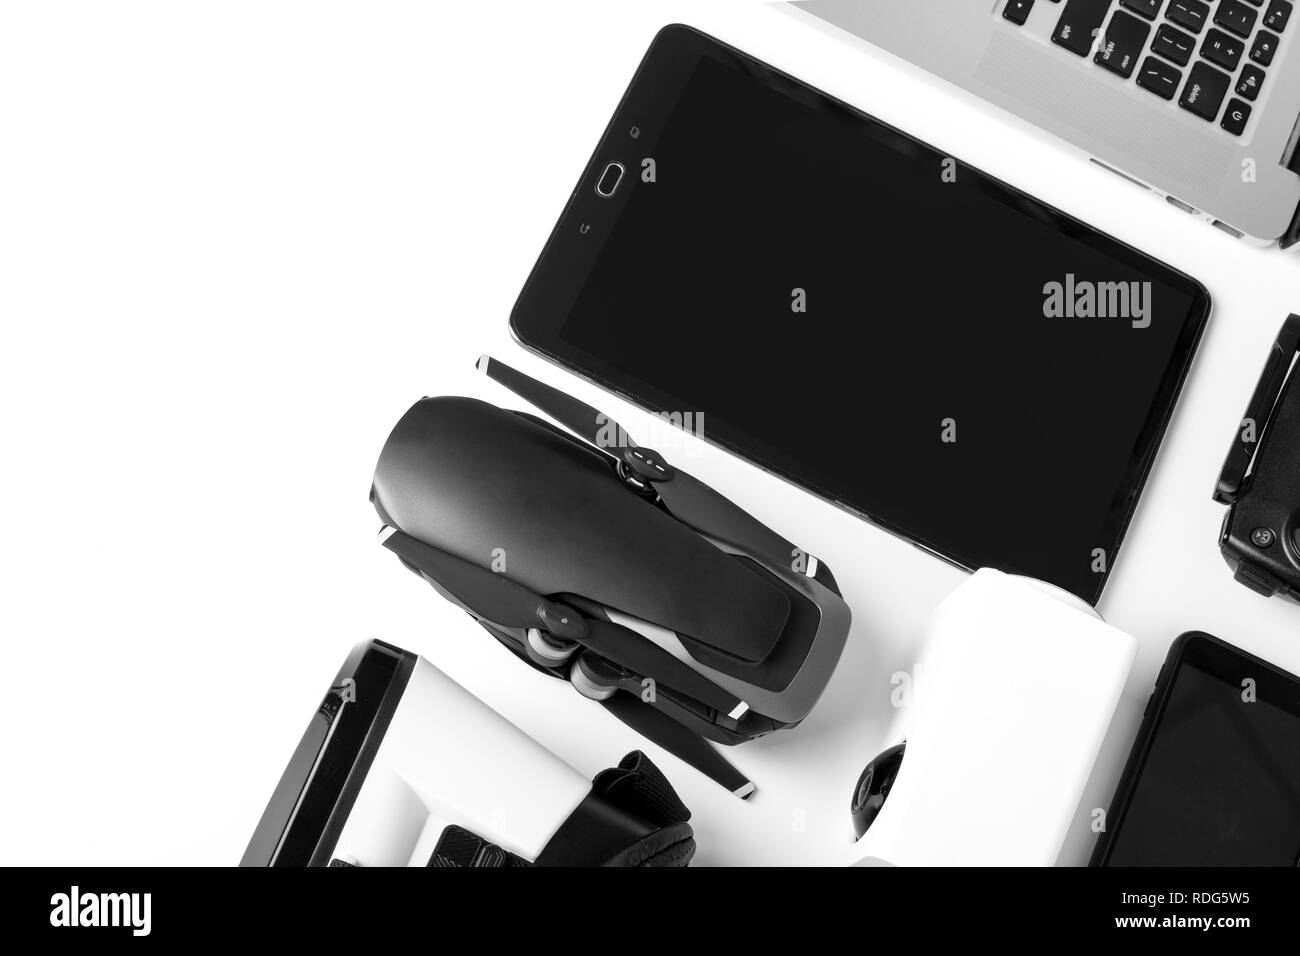 modern gadgets on a white background, a tablet with a dark screen next to the drone and laptop - Stock Image